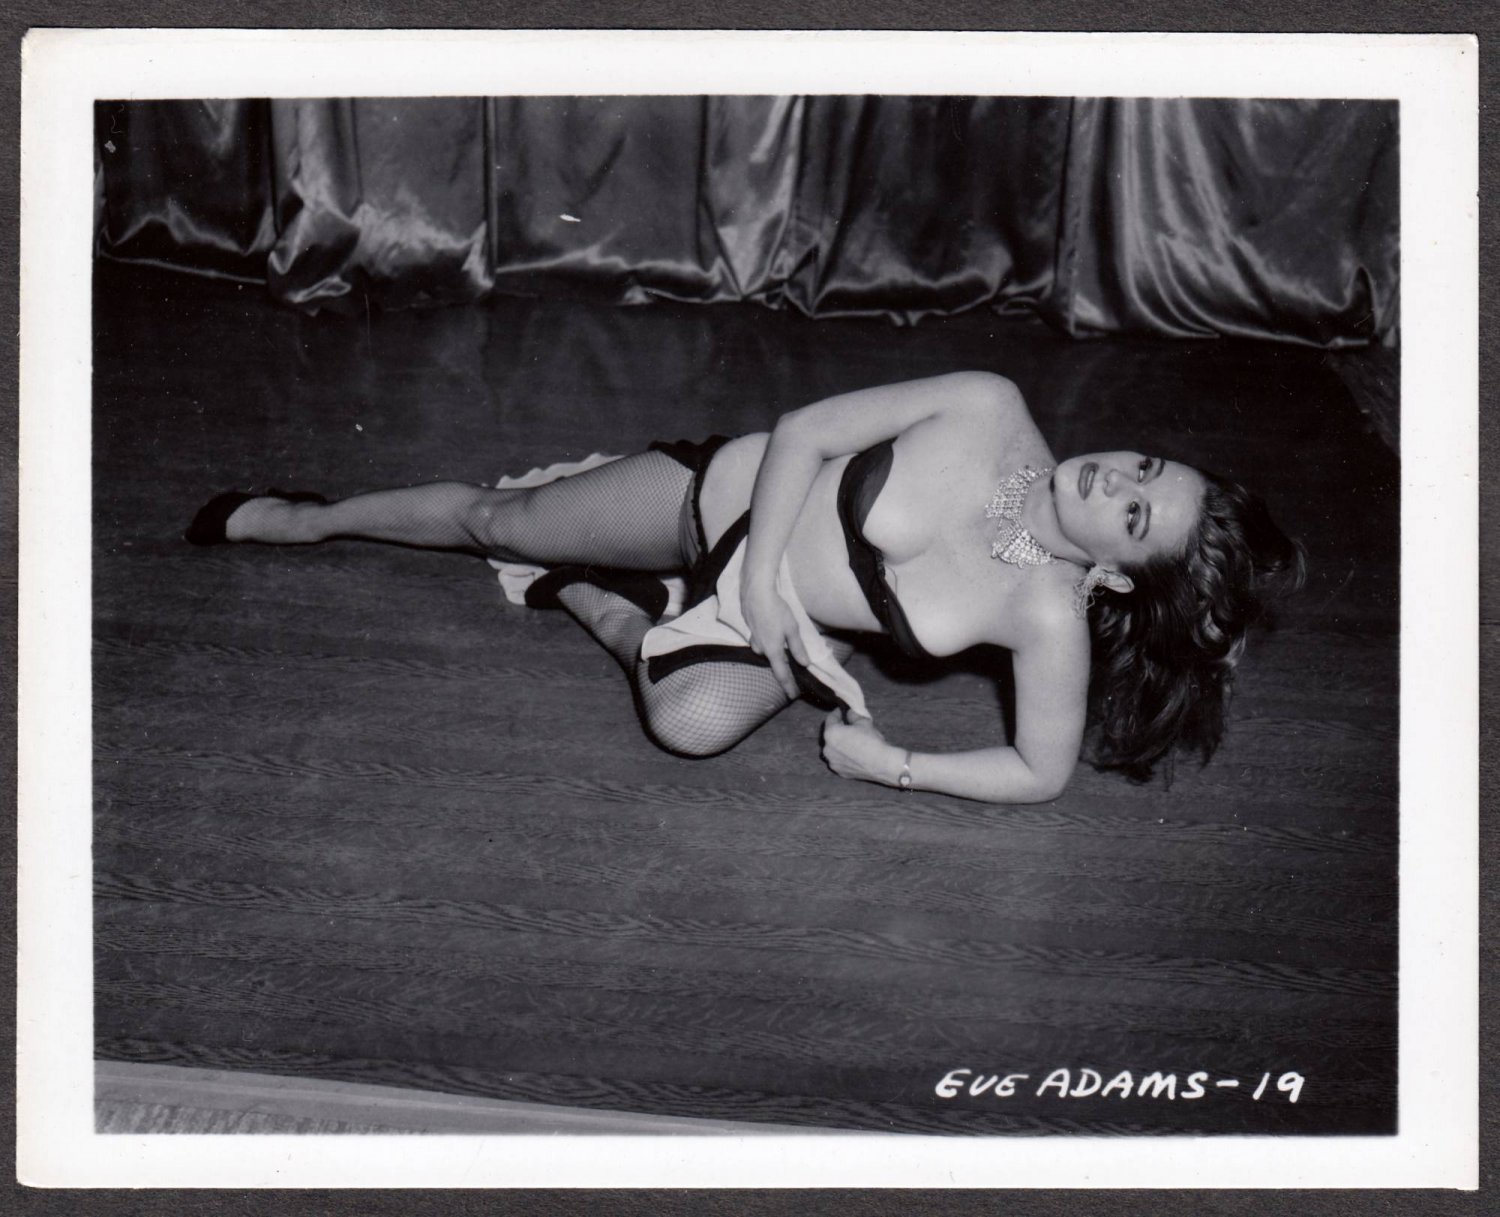 STRIPPER EVE ADAMS IRVING KLAW VINTAGE ORIGINAL PHOTO 4X5 1950'S #19